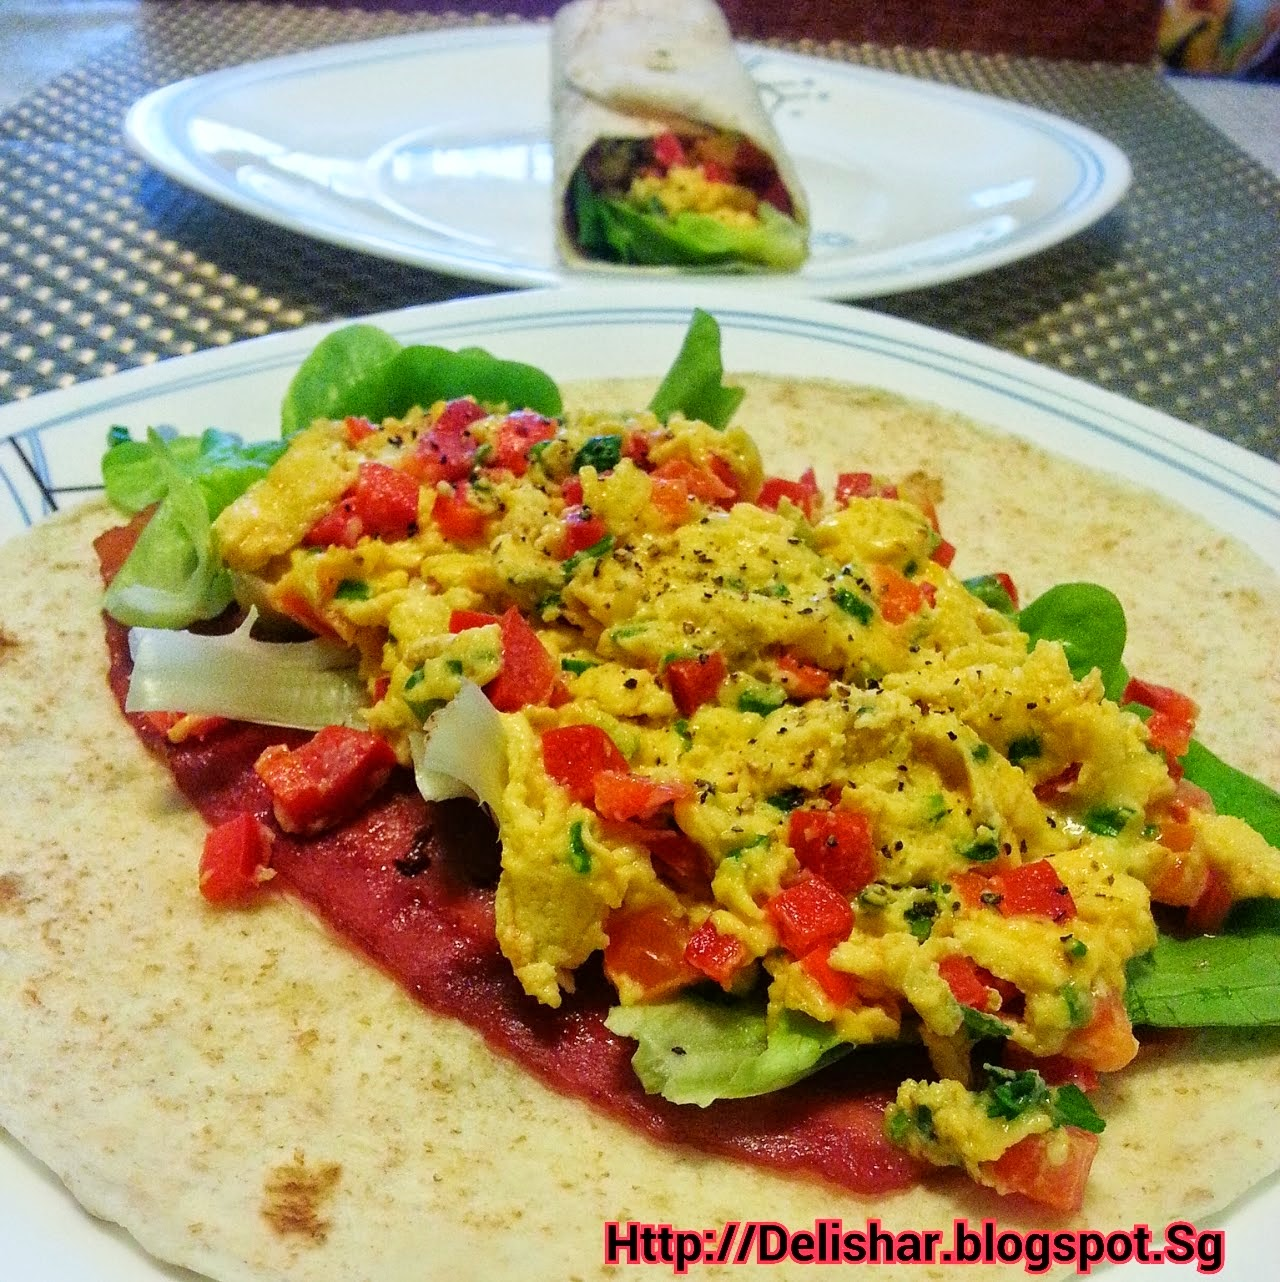 Blogspot Food Blog Breakfast Burrito Delishar Singapore Cooking Recipe